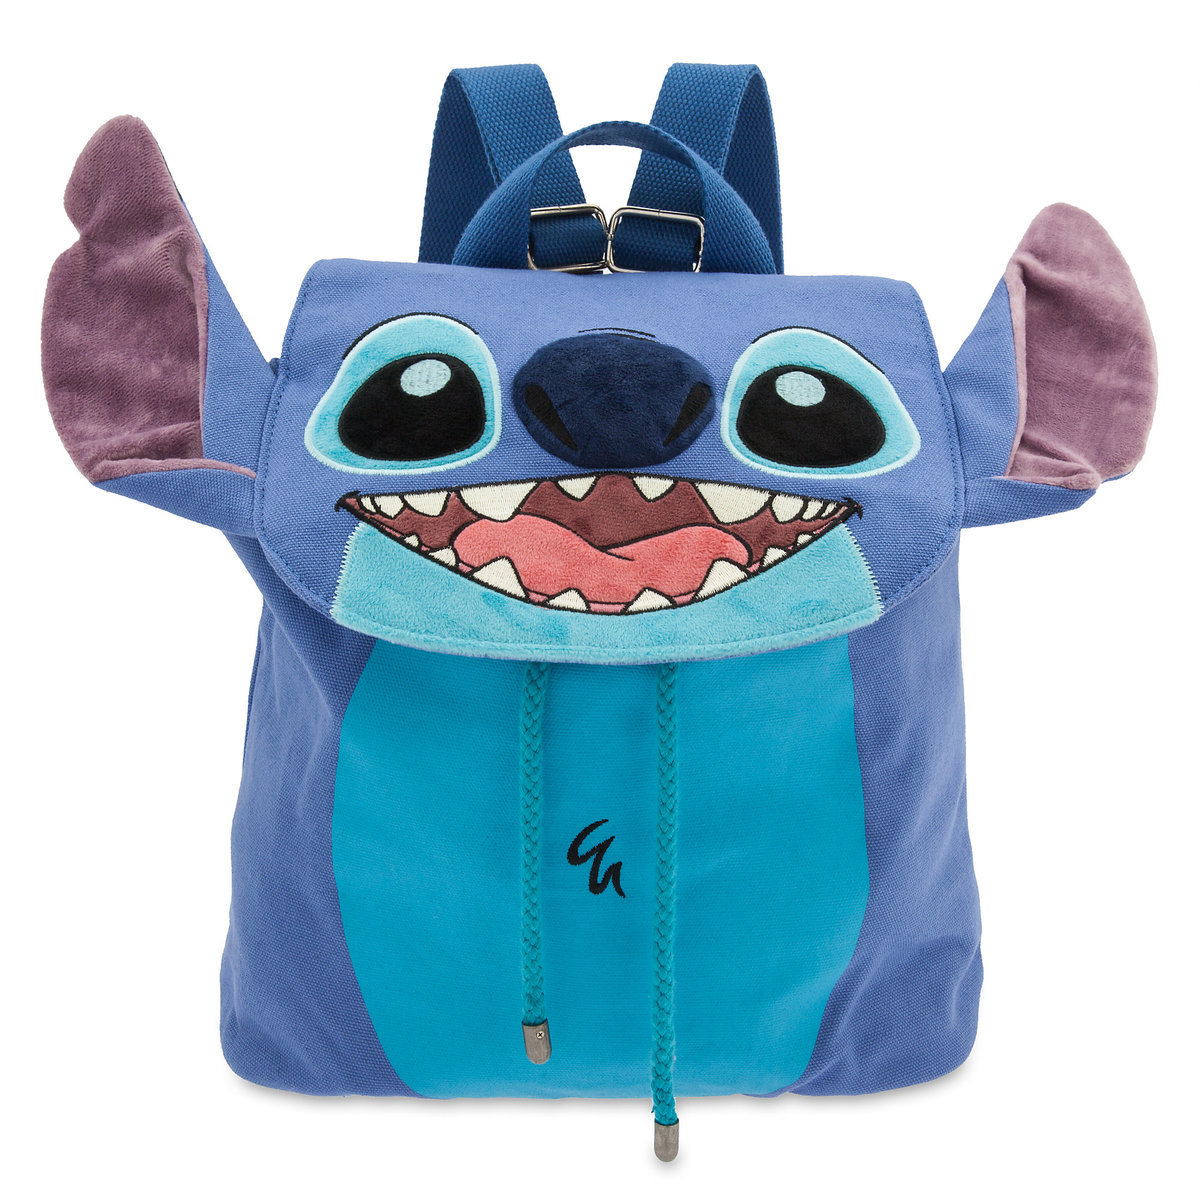 Add to My Lists. Disney Backpack Bag - Stitch Talking Backpack